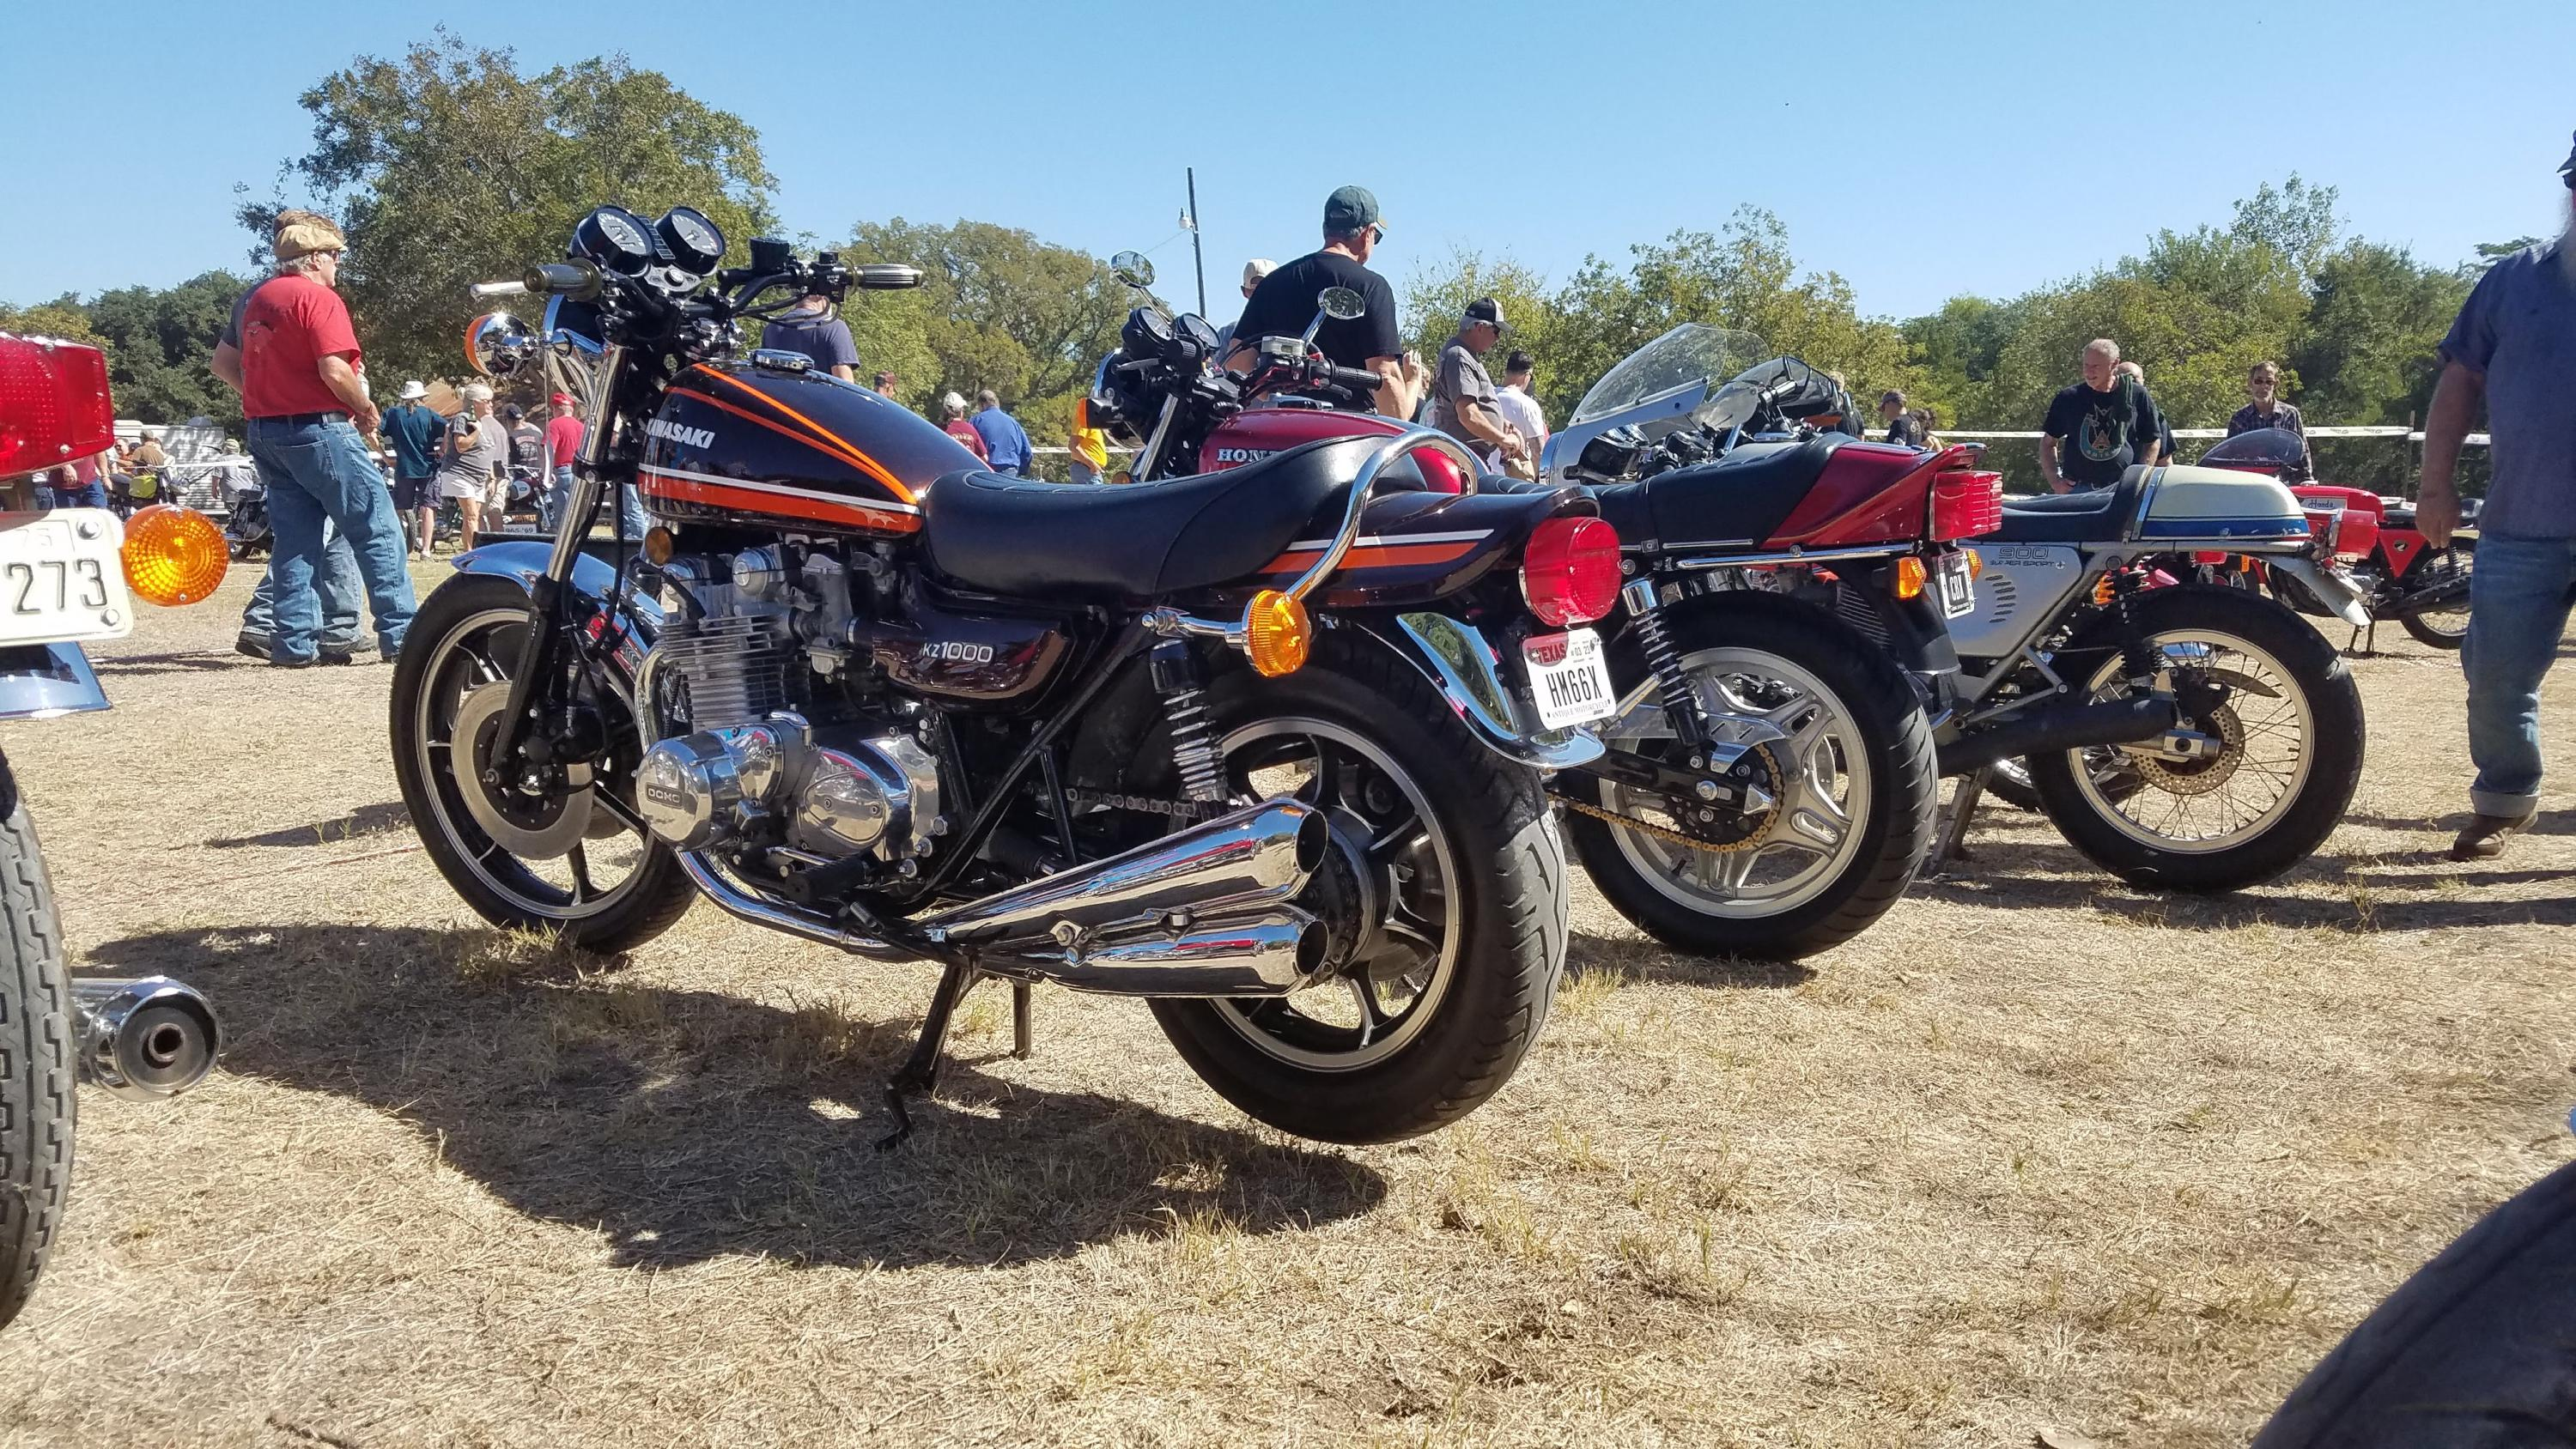 Some pictures from the Harvest Classic in Luckenbach, Texas-20191019_114916.jpg